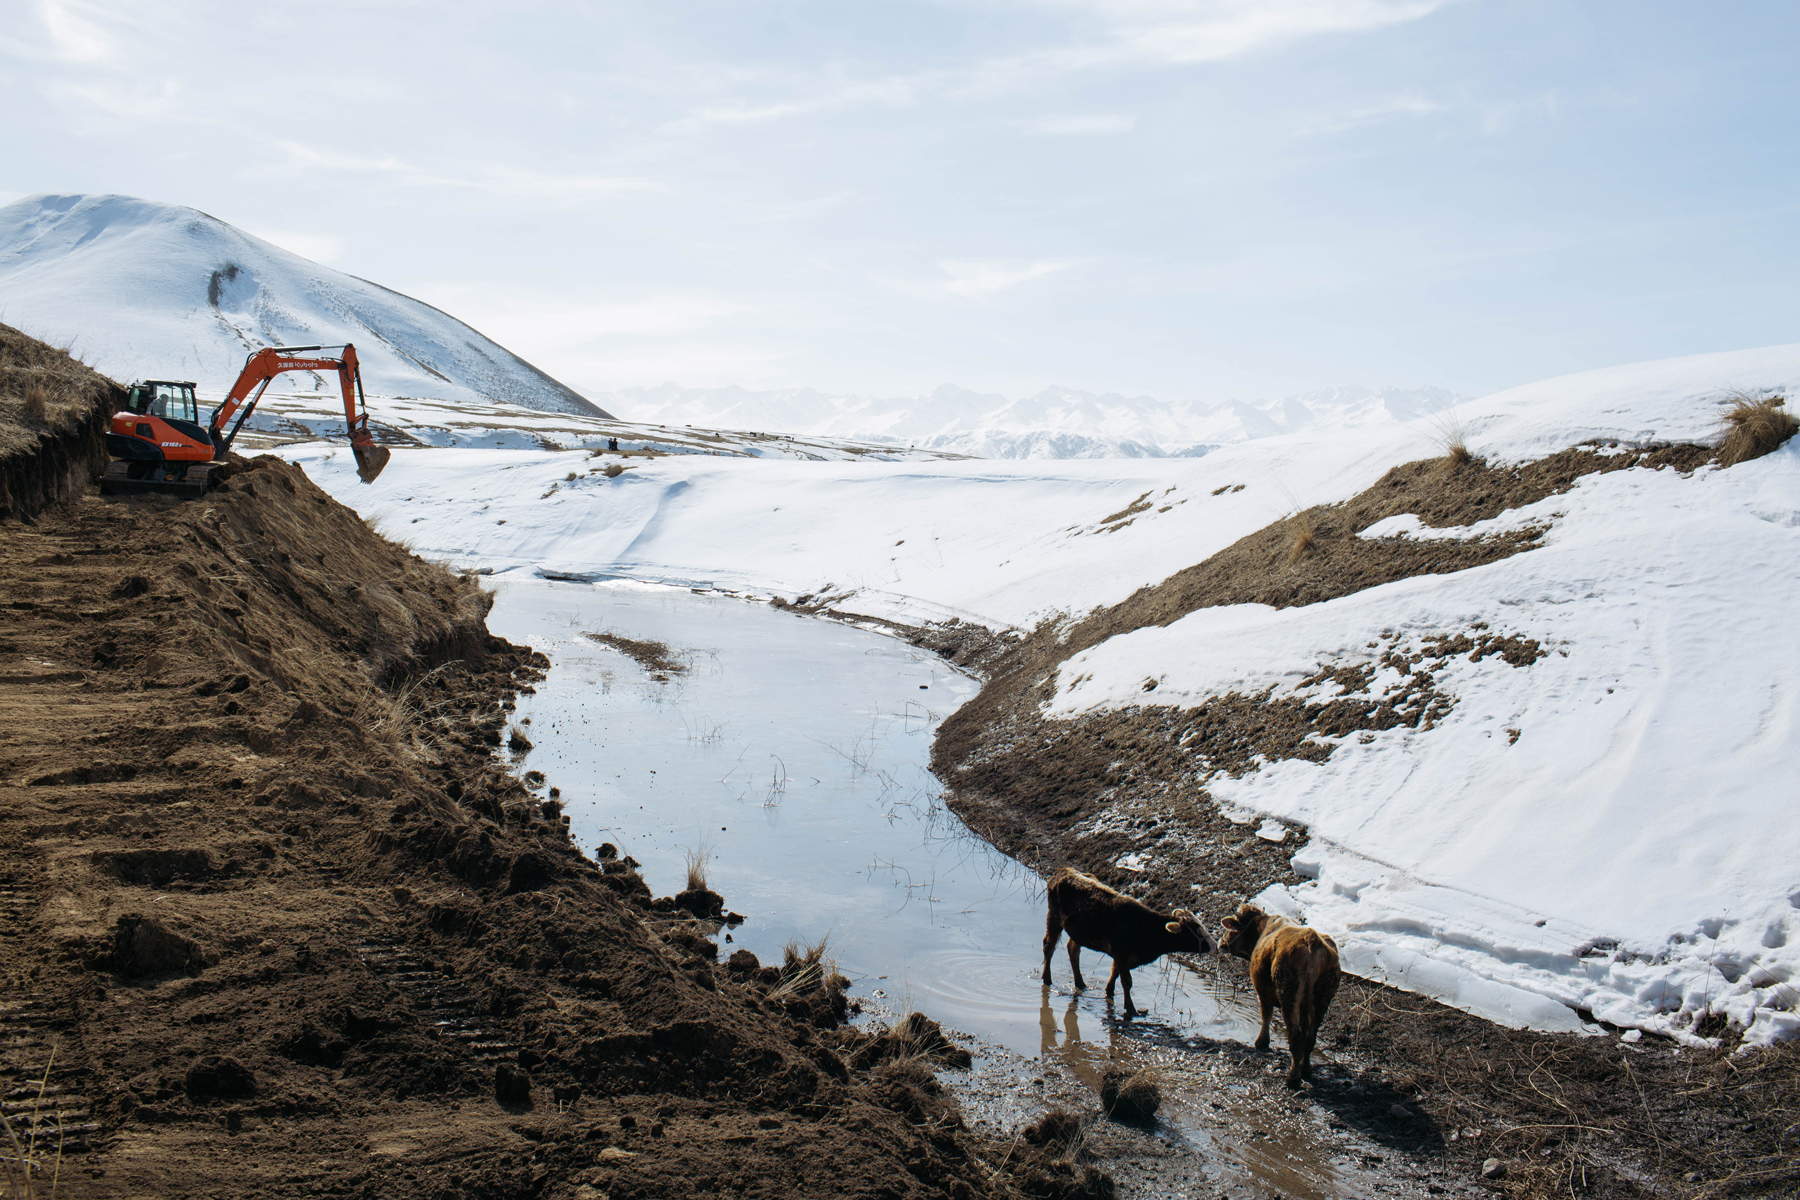 Melting snow obstructs a road in Ili Kazak Autonomous Prefecture, Xinjiang Uighur Autonomous Region, March 7. As the world's largest emitter of carbon, China produced 4.7 percent more greenhouse gases in 2018 than in 2017, marking its sharpest increase since 2011. Although the country is promoting renewable energy, the government's attempts to boost the economy have led to the loosening of environmental regulation of heavy industries. (Wu Huiyuan/Sixth Tone)